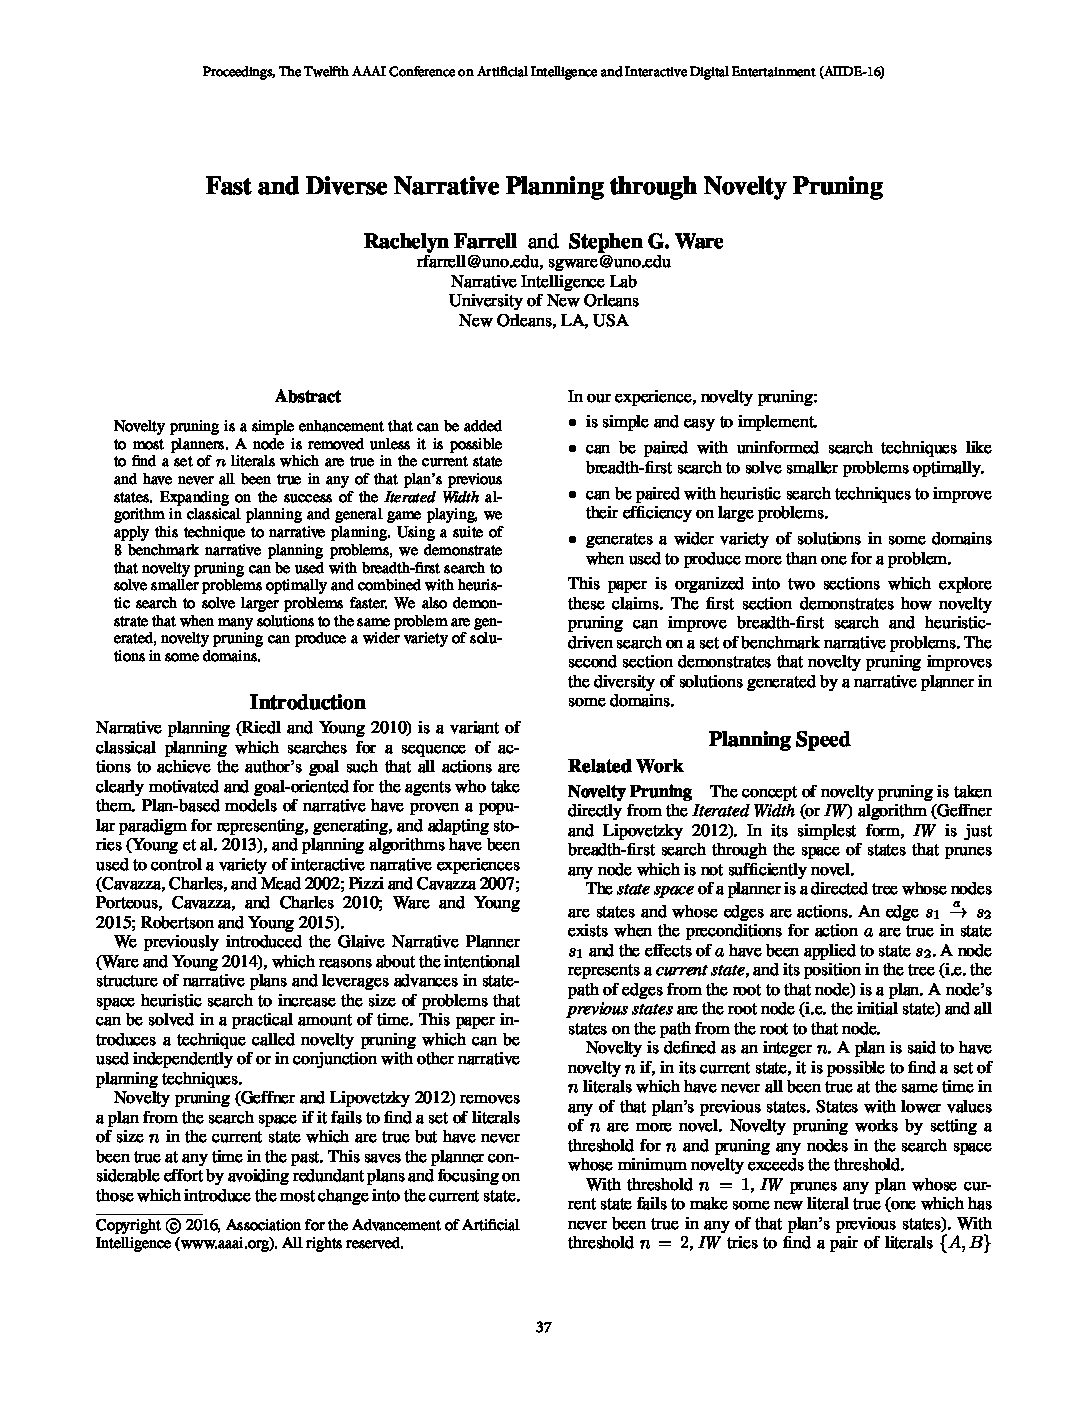 Fast and Diverse Narrative Planning through Novelty Pruning